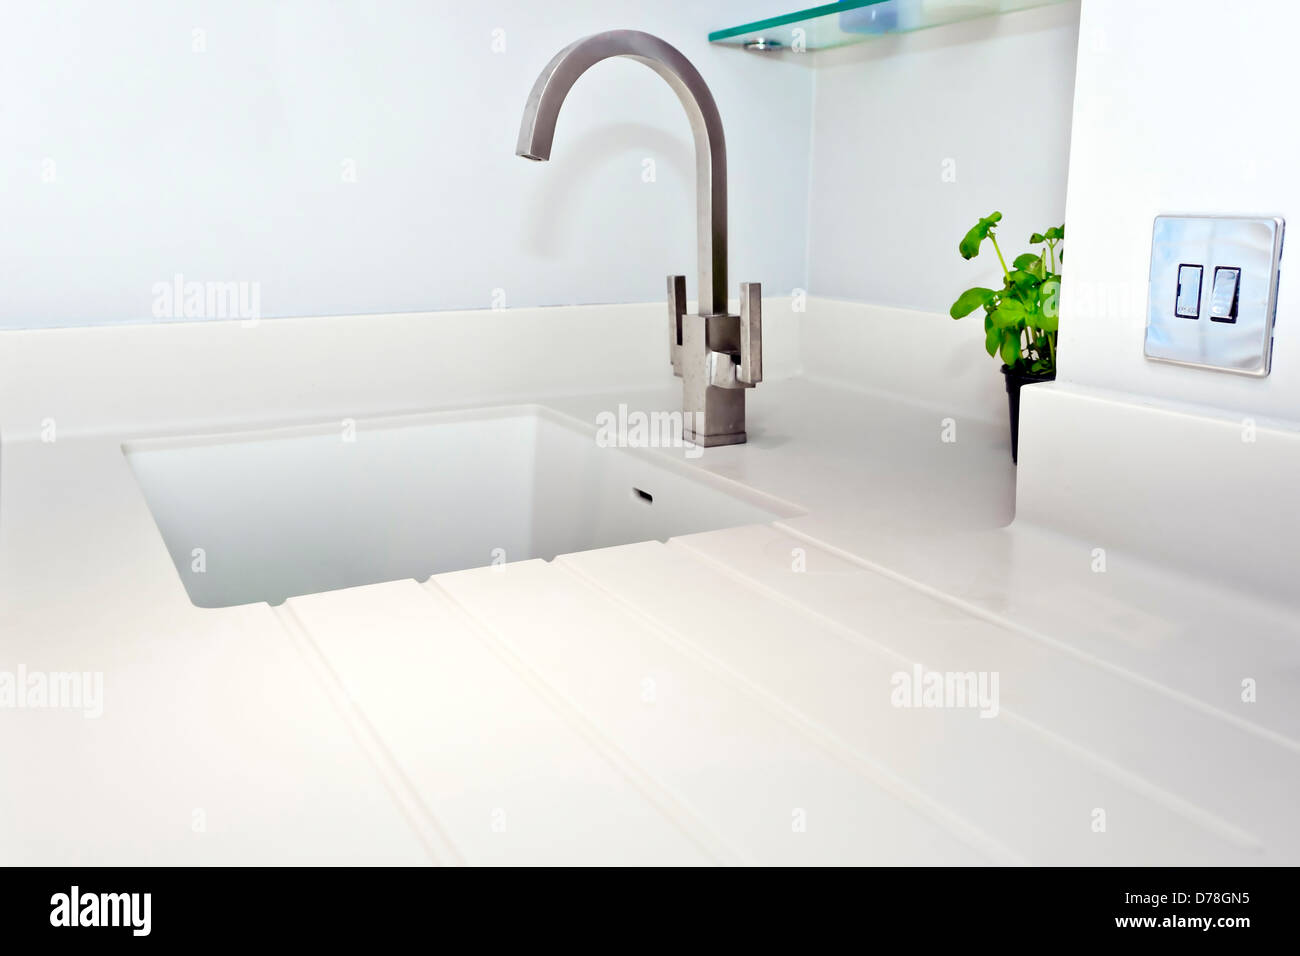 Ceramic Sink Stockfotos & Ceramic Sink Bilder - Alamy